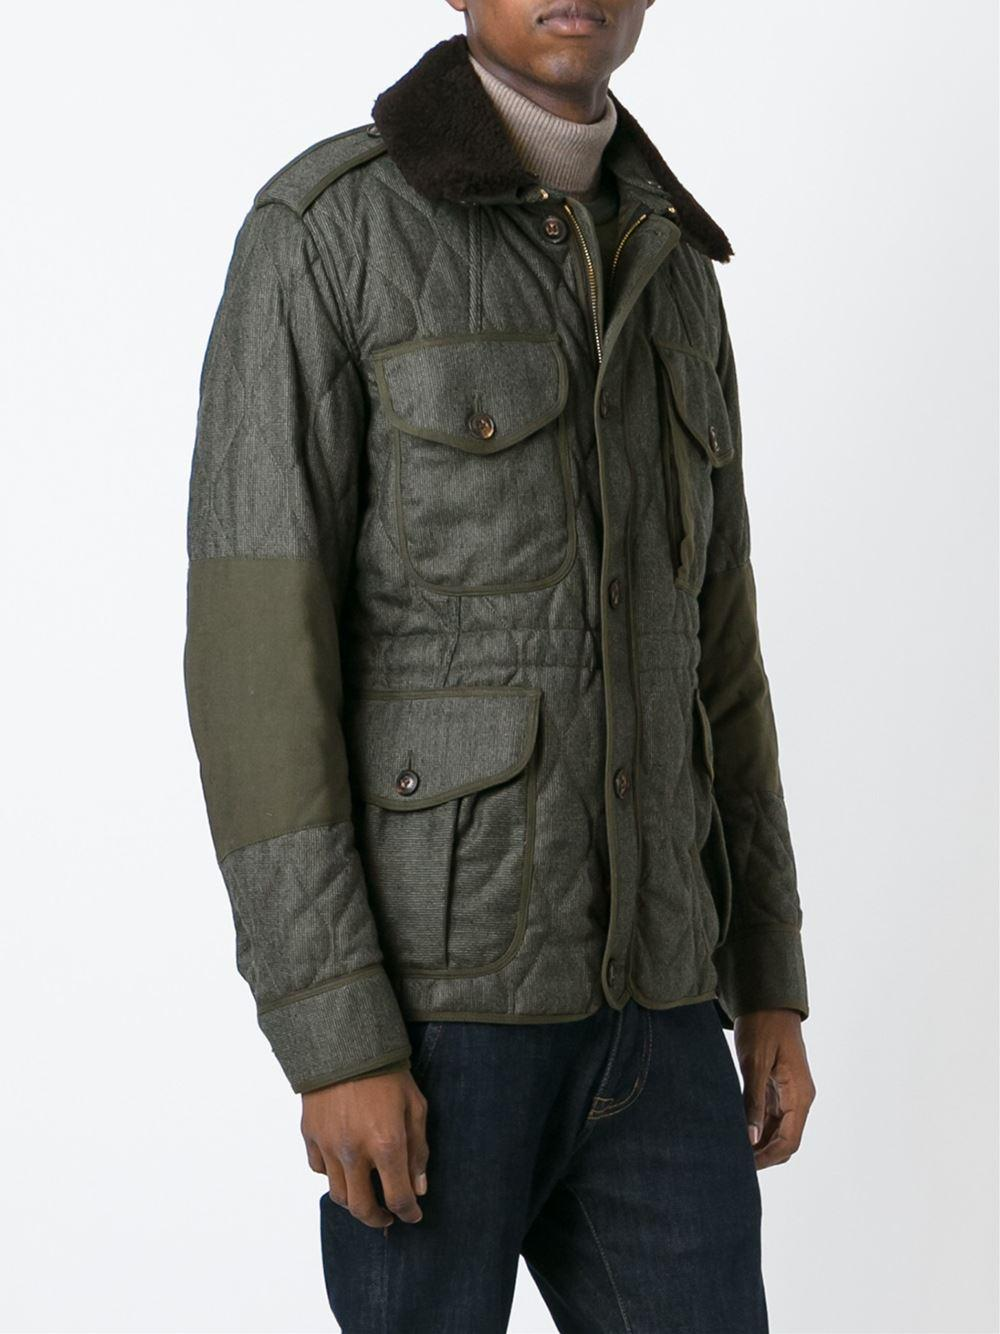 Burberry Brit Multi Pockets Quilted Jacket In Green For